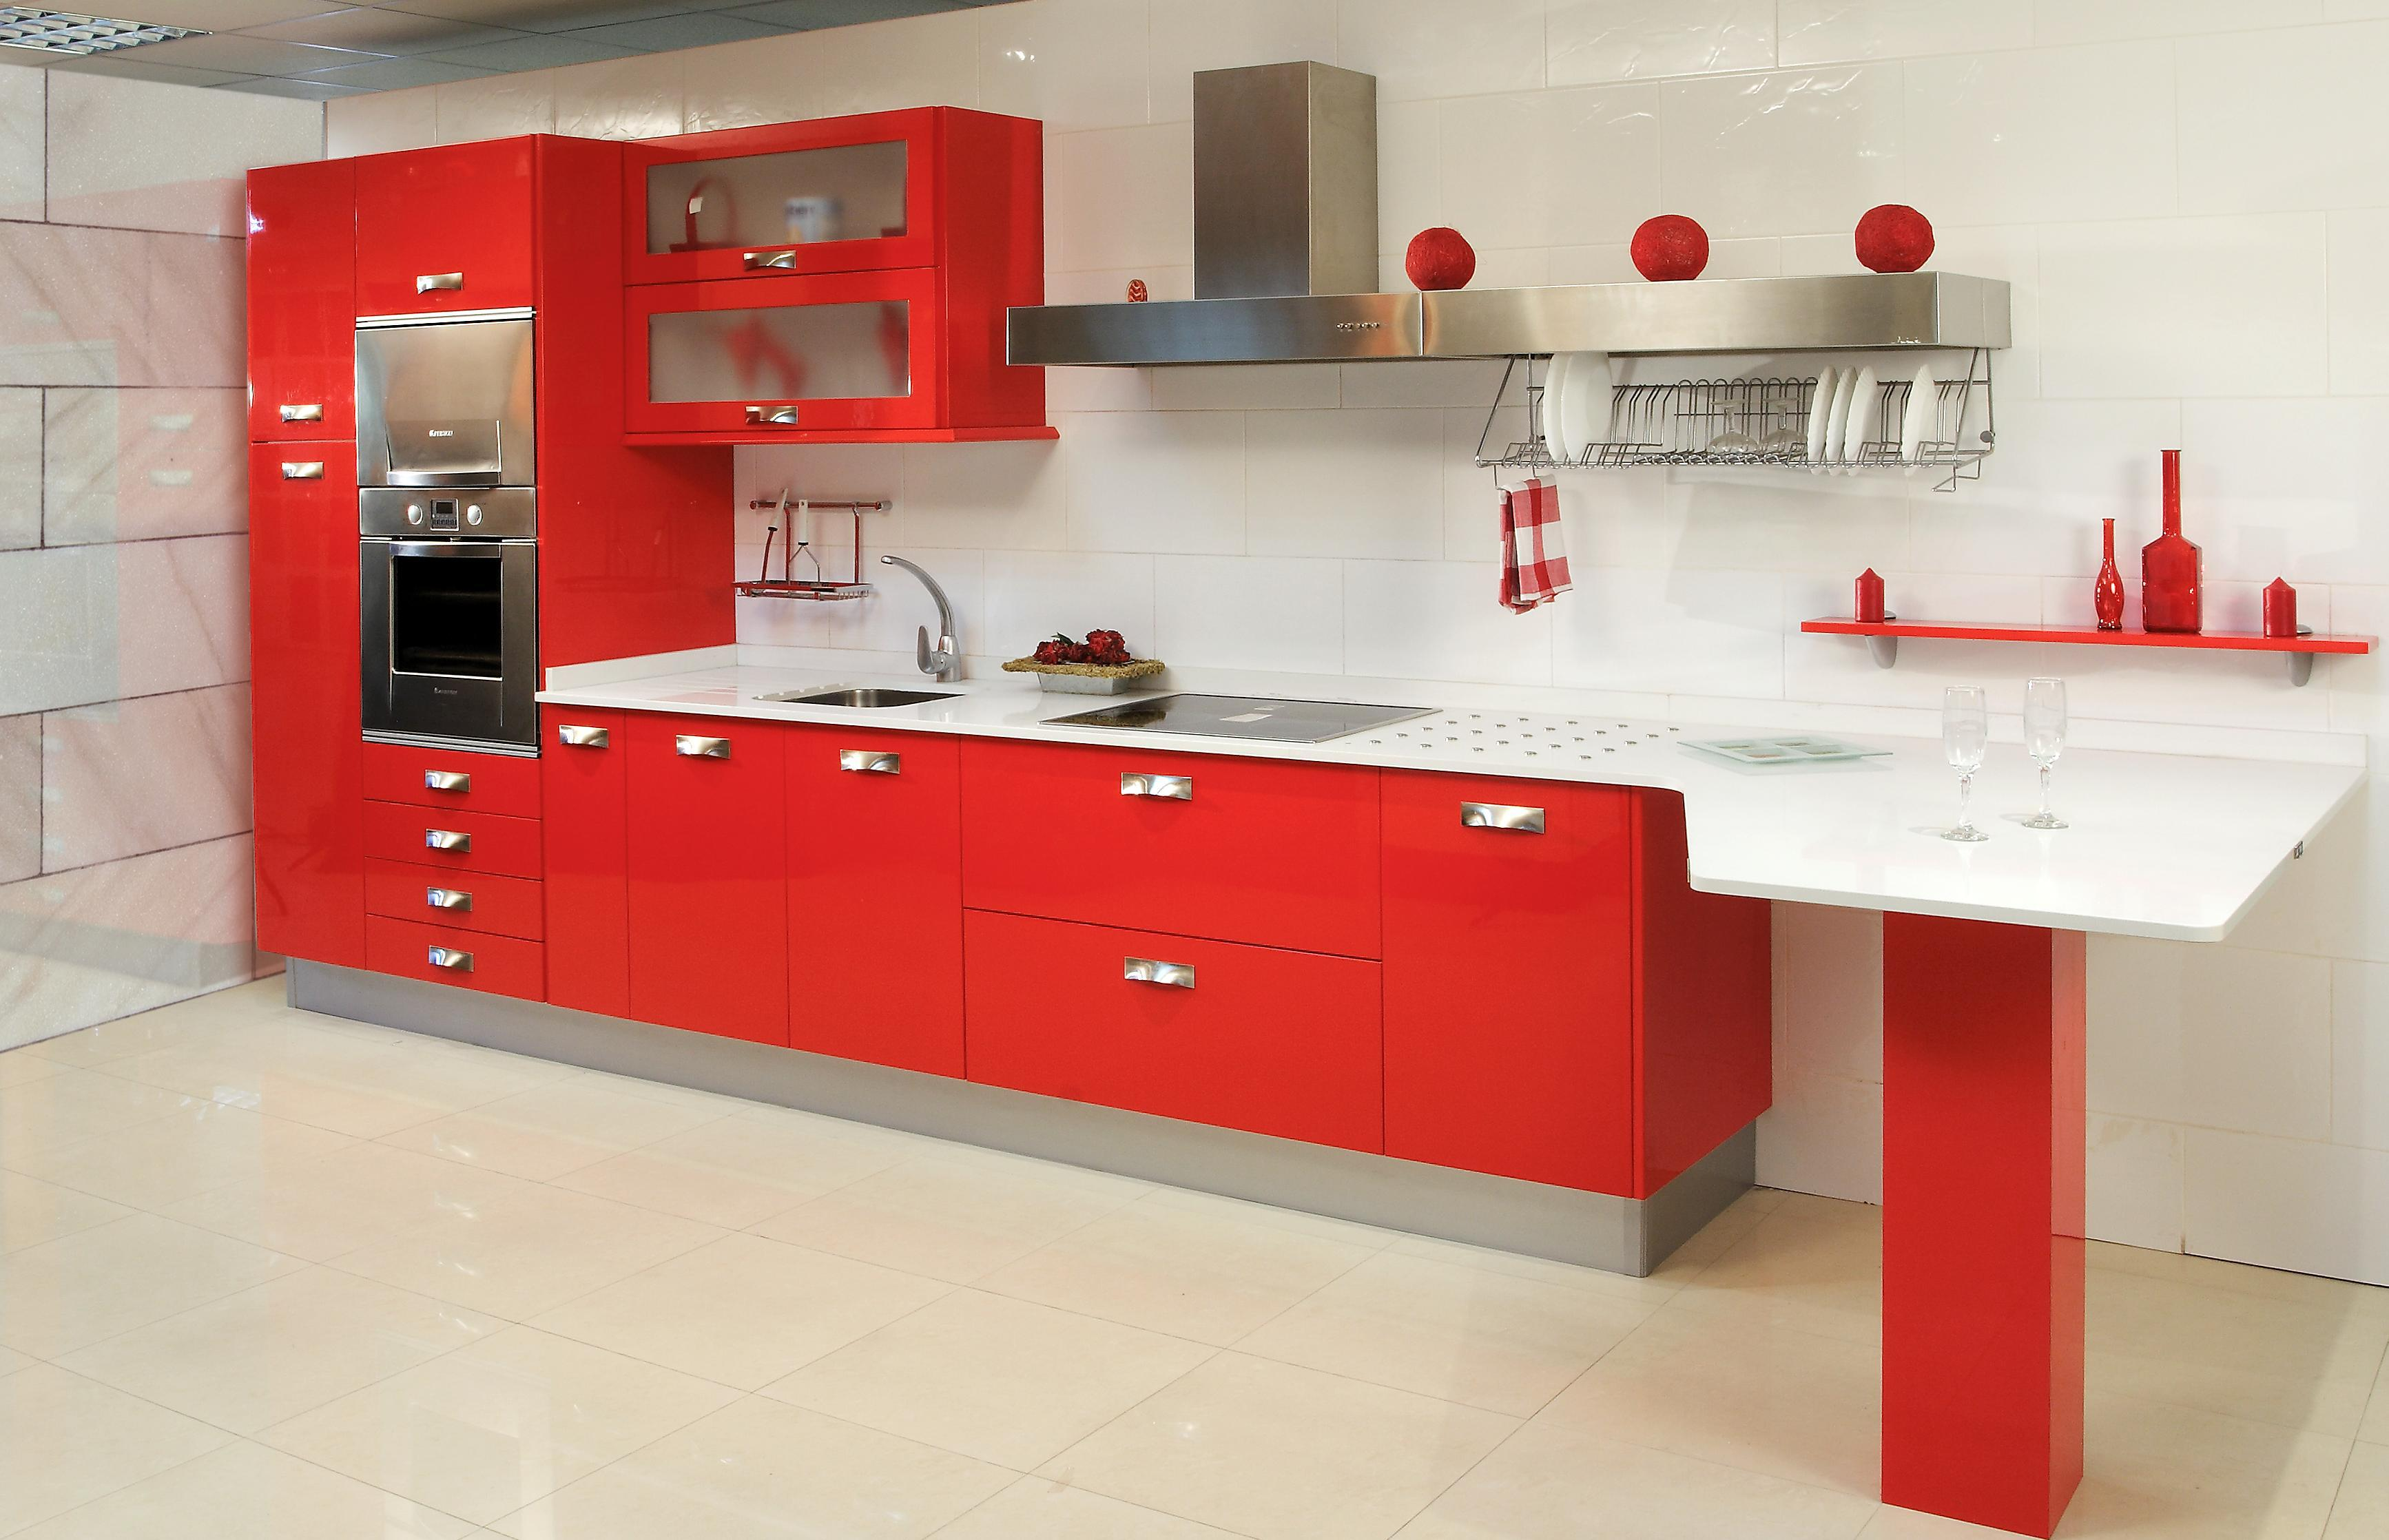 _white_countertop_in_red_kitchen_091417_